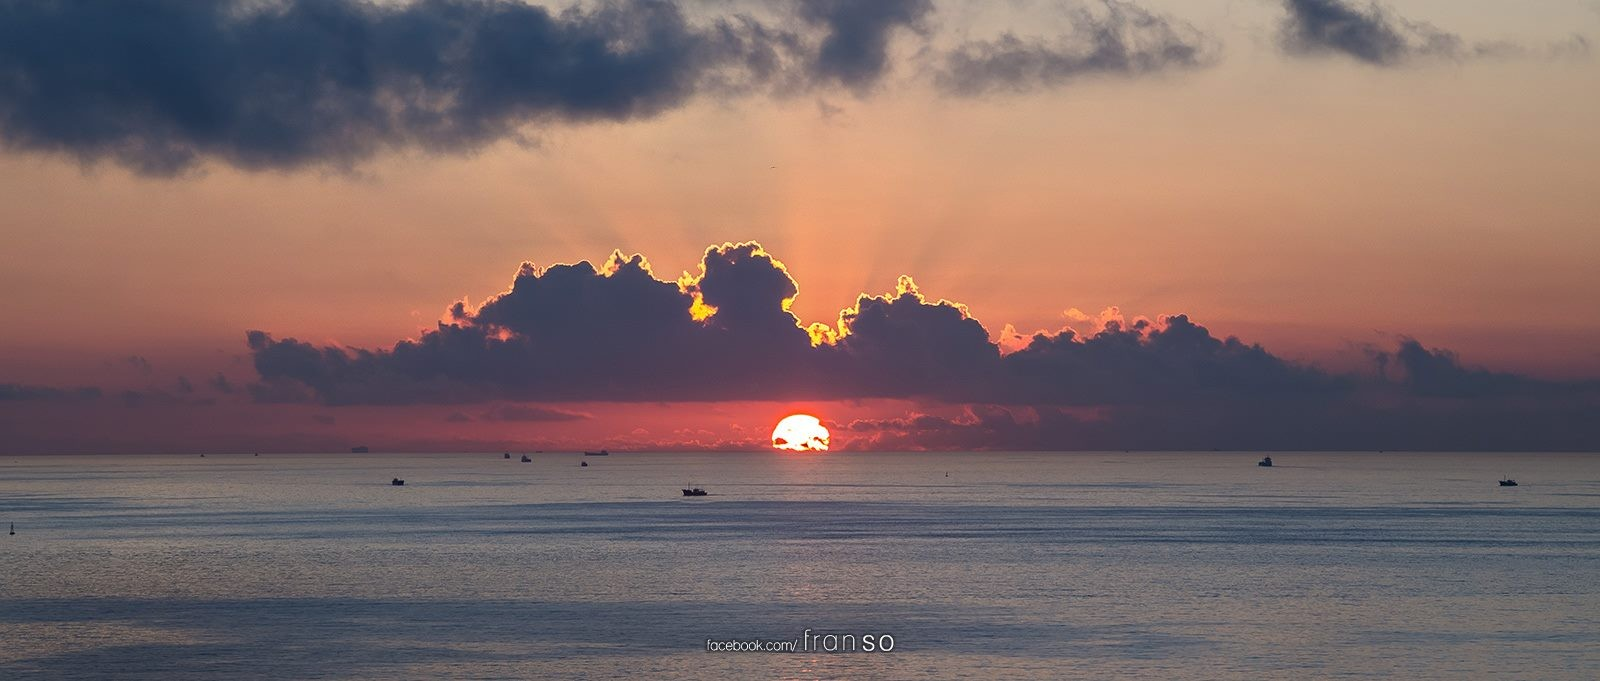 Landscape | Hong Kong | Sunrise  | rise on the sea